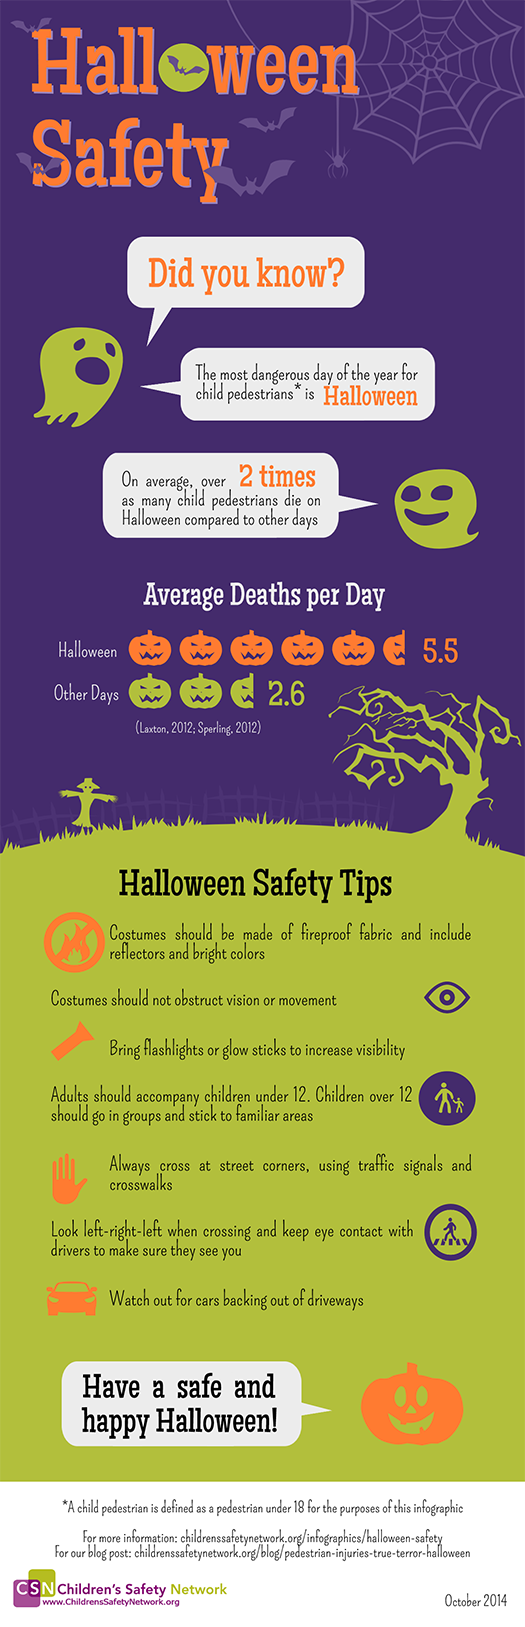 The deadliest day of the year for child pedestrians is Halloween. On average, over two times as many child pedestrians die on Halloween compared to other days. Read Halloween safety facts and tips in our infographic. Have a safe and happy Halloween!